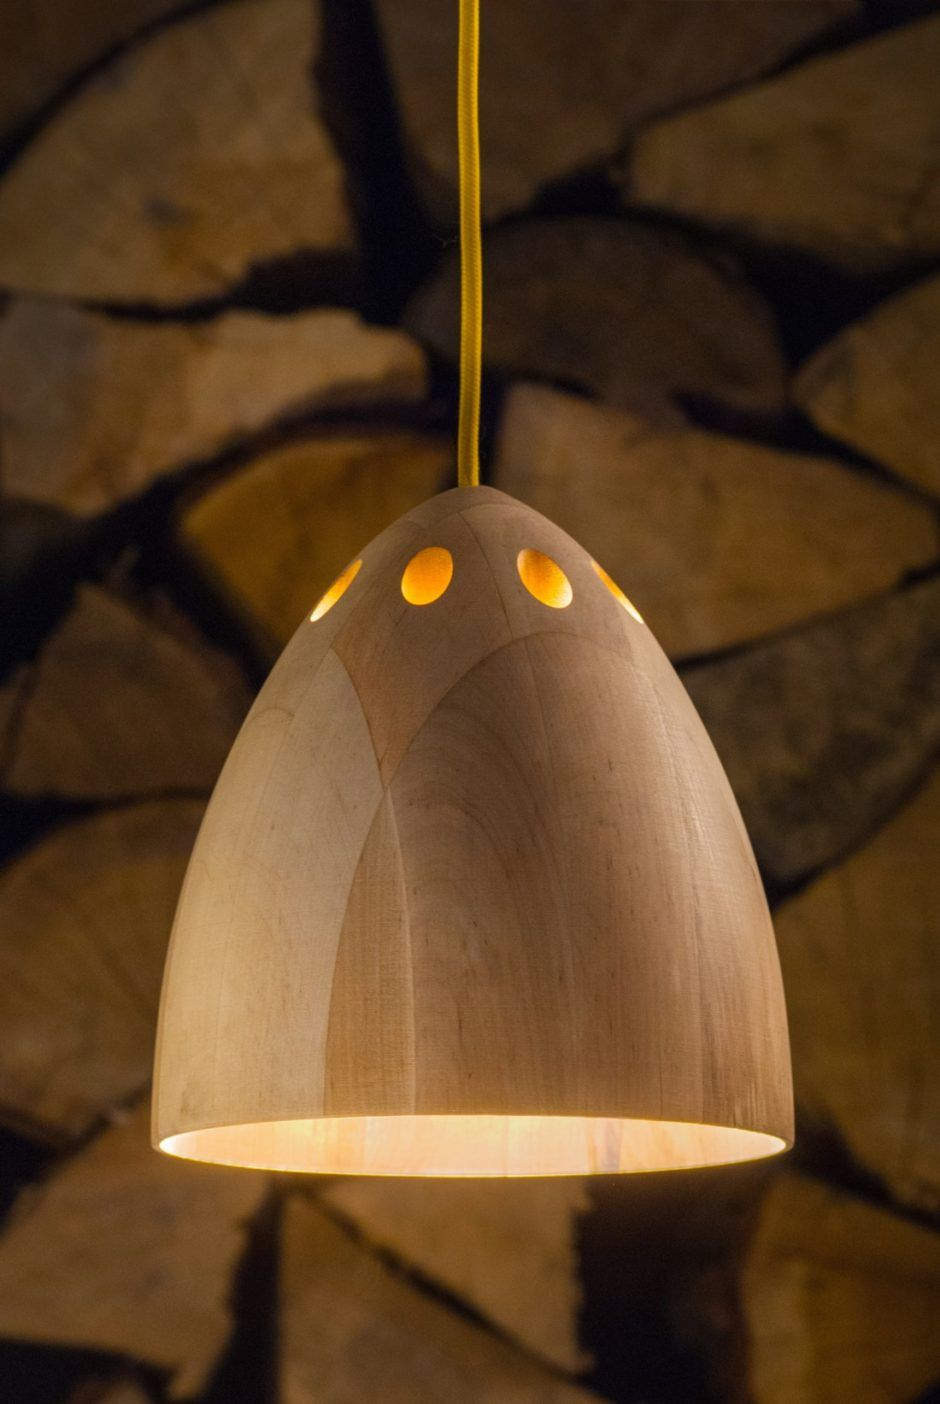 SLIVA wooden pendant lamp by Abadoc Design made in Poland on CROWDYHOUSE #lamp #wood #design